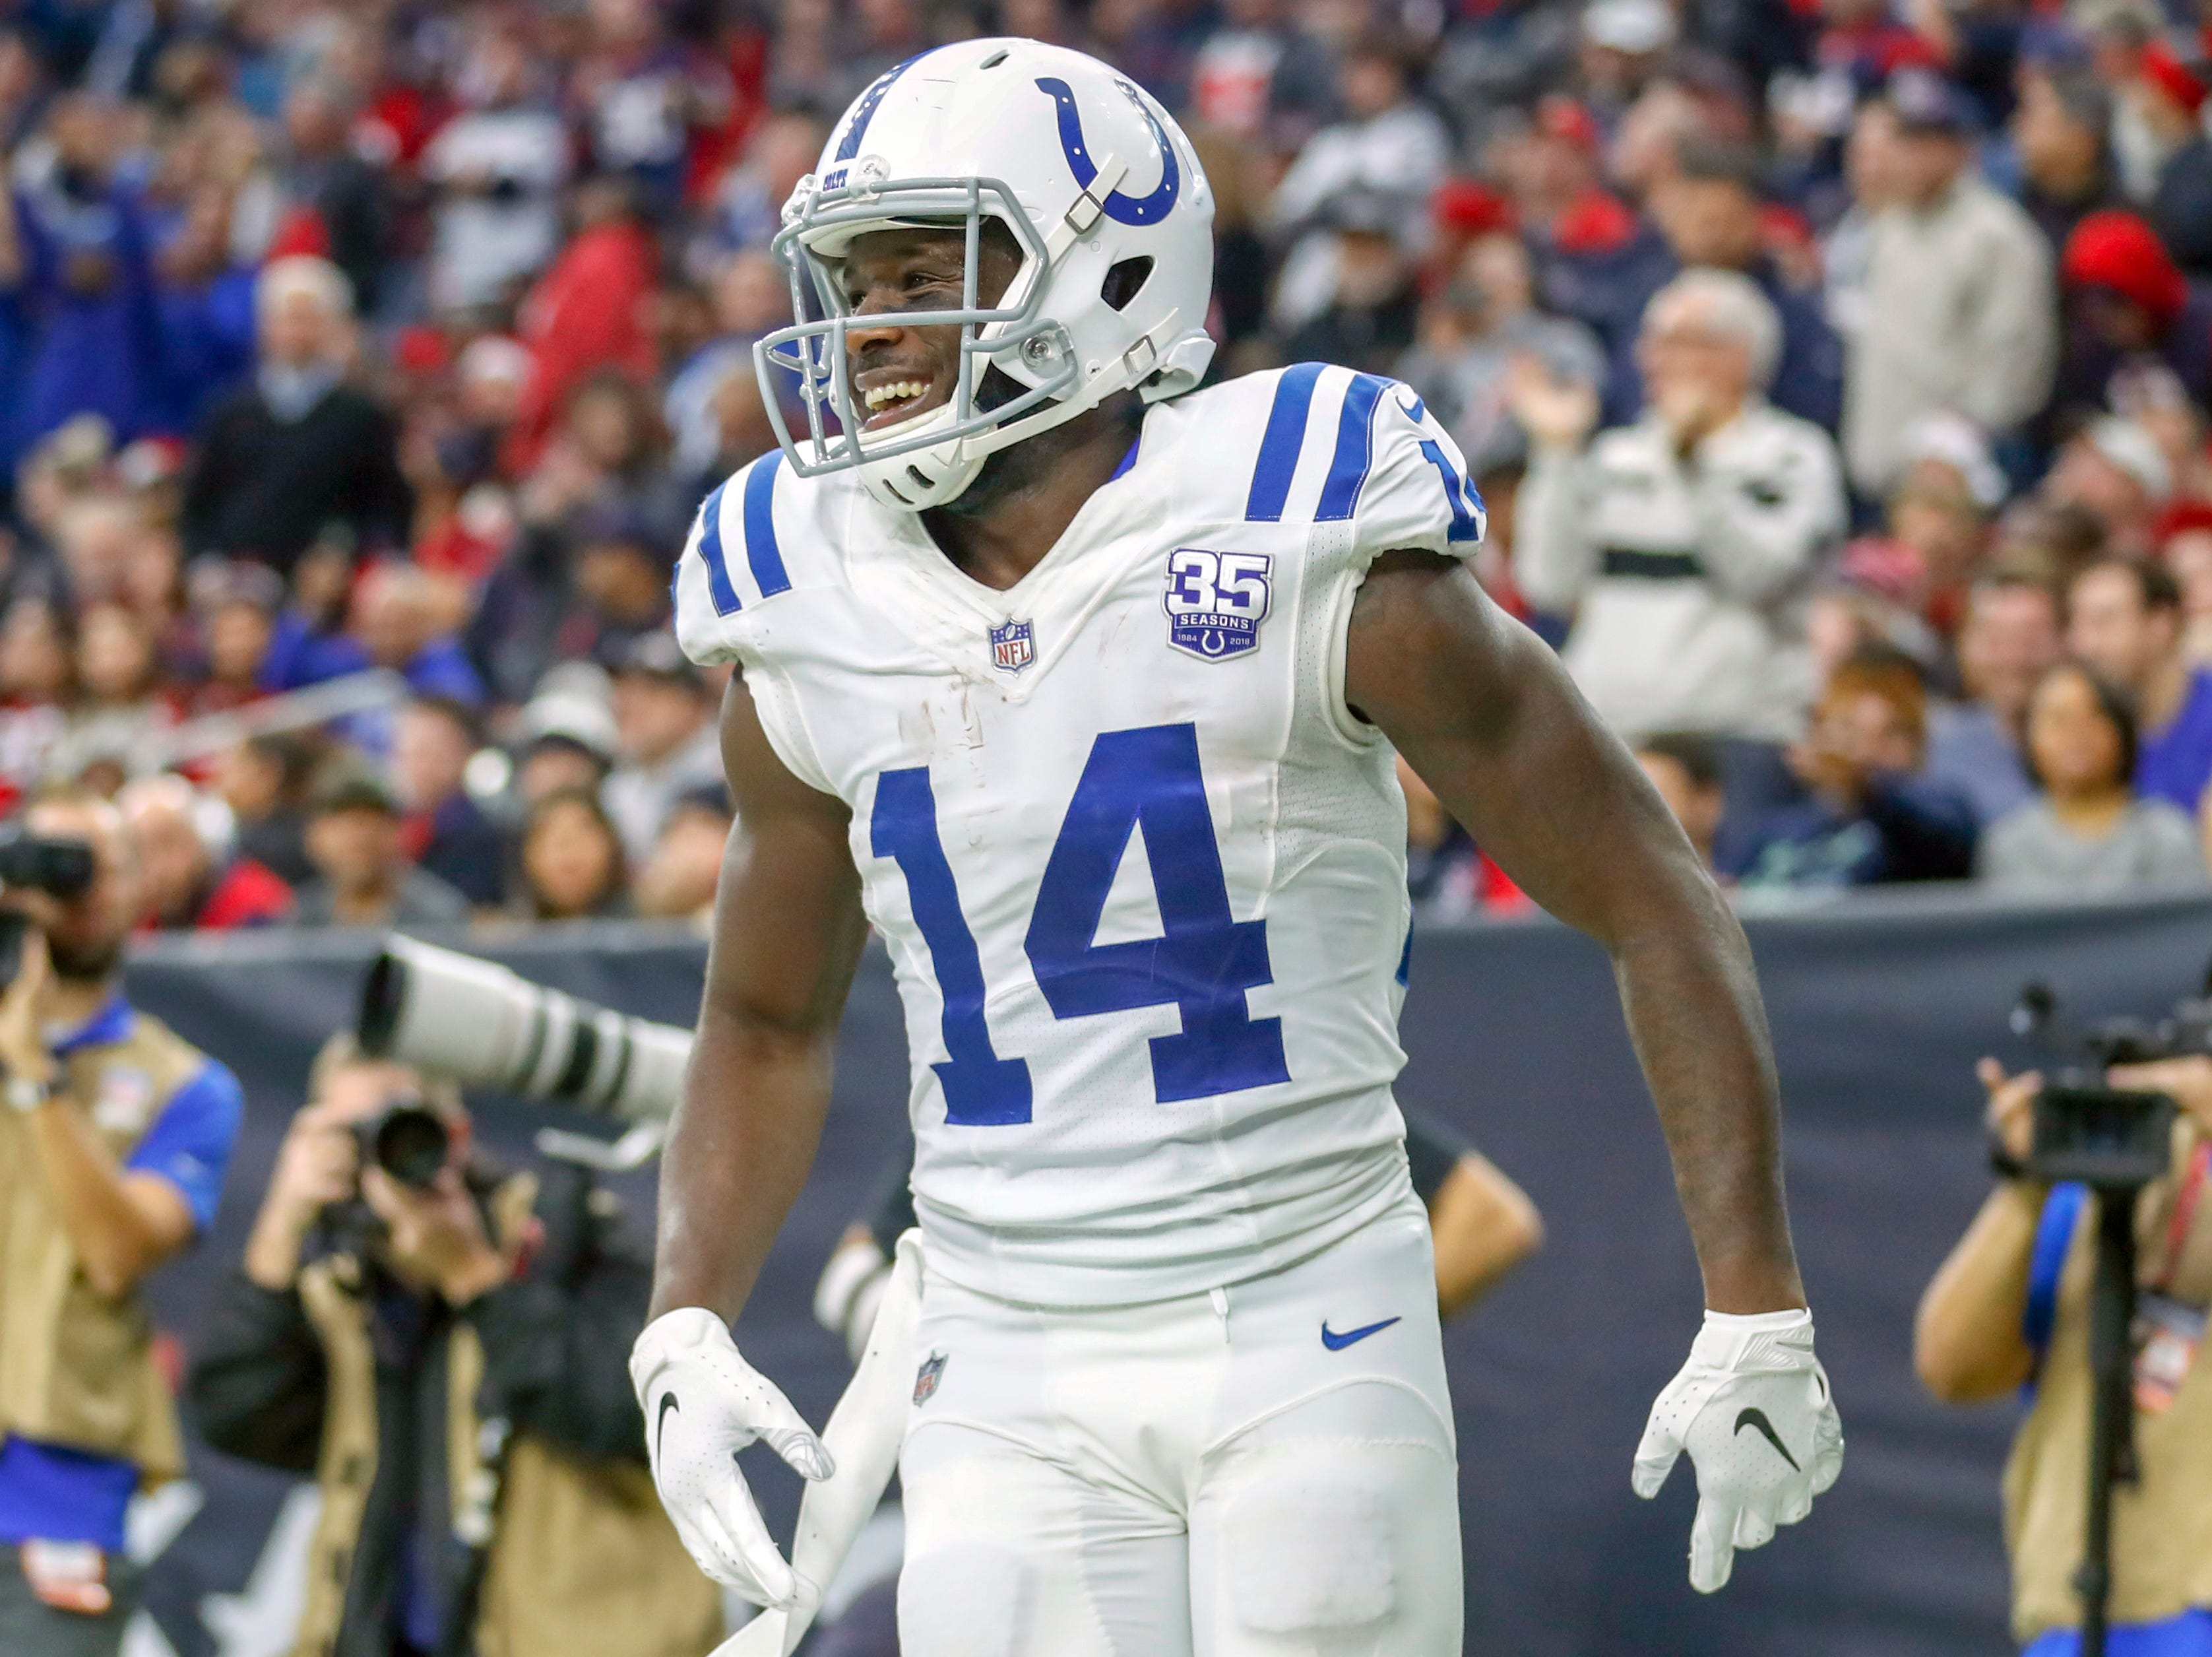 Indianapolis Colts wide receiver Zach Pascal (14) smiles in the end zone after beating Houston Texans defensive back Shareece Wright (43) on a double move and pulling in a touchdown pass in the third quarter at NRG Stadium in Houston on Sunday, Dec. 9, 2018.